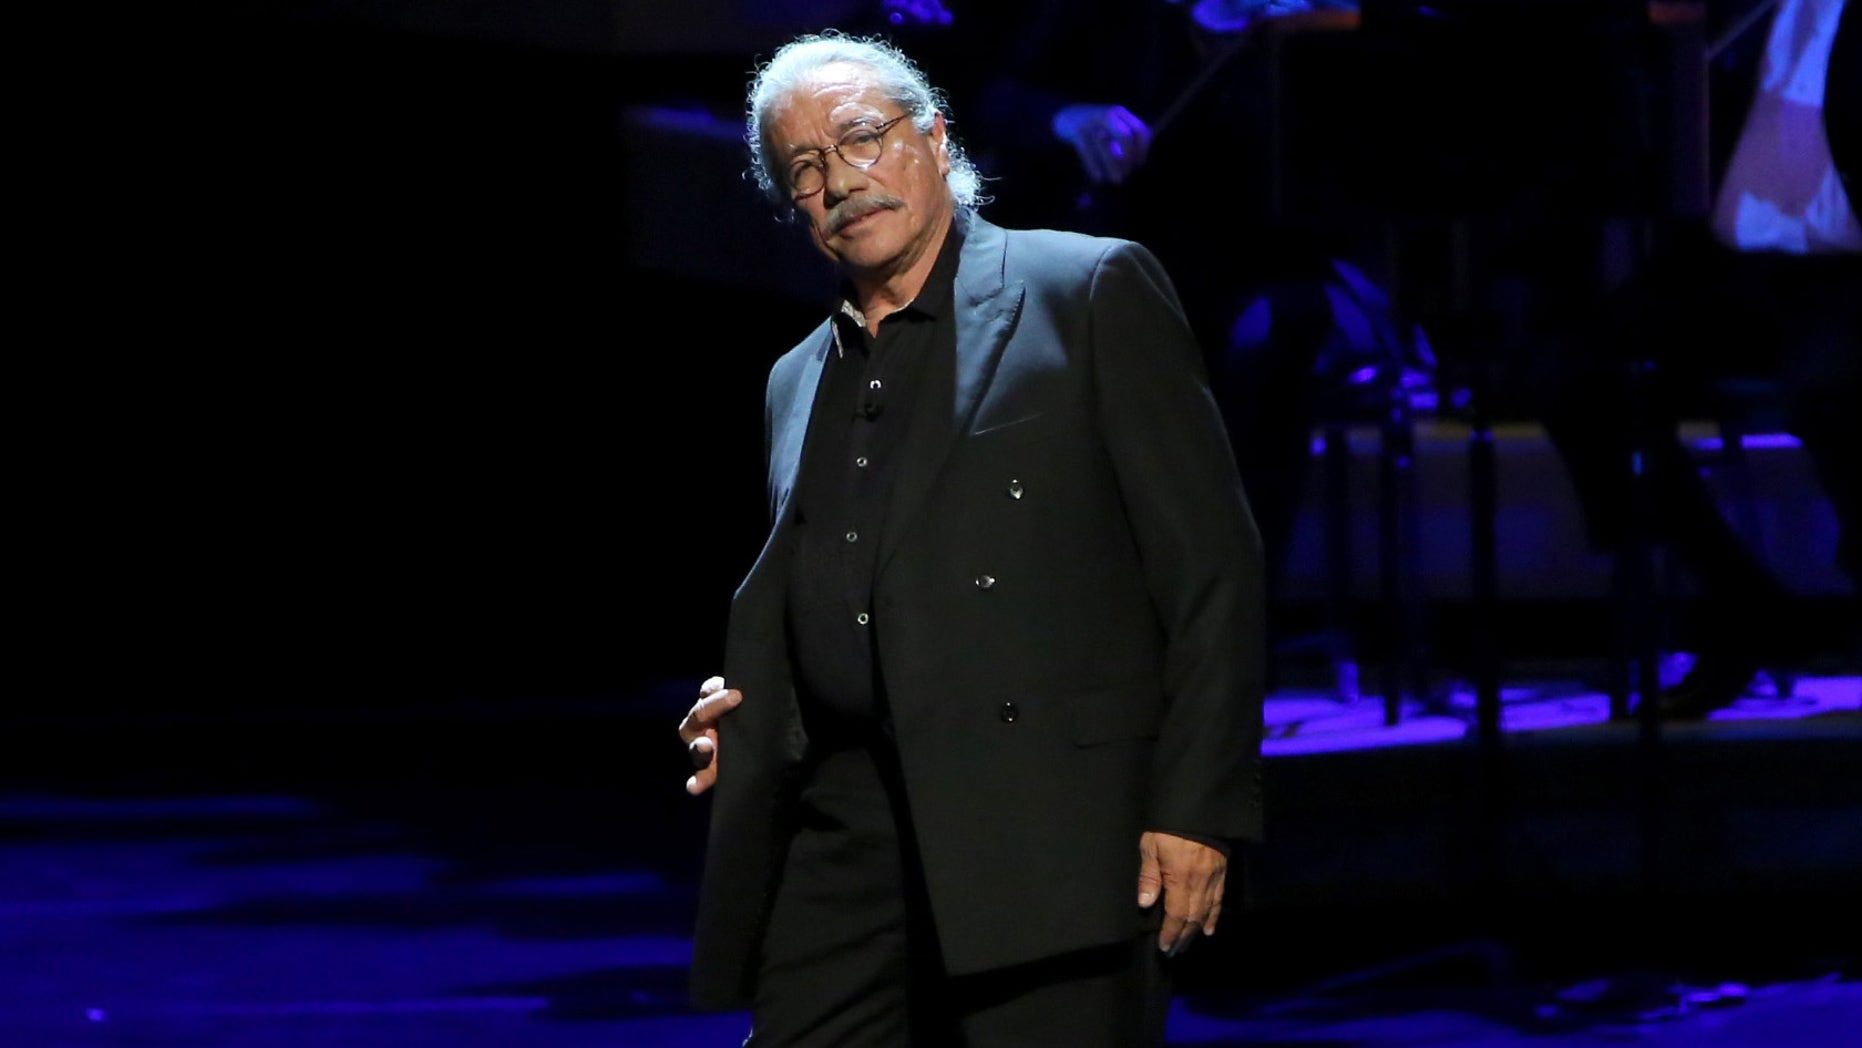 LOS ANGELES, CA - DECEMBER 06:  Actor Edward James Olmos performs onstage during The Music Center's 50th Anniversary Spectacular at The Music Center on December 6, 2014 in Los Angeles, California.  (Photo by Jonathan Leibson/Getty Images for The Music Center)